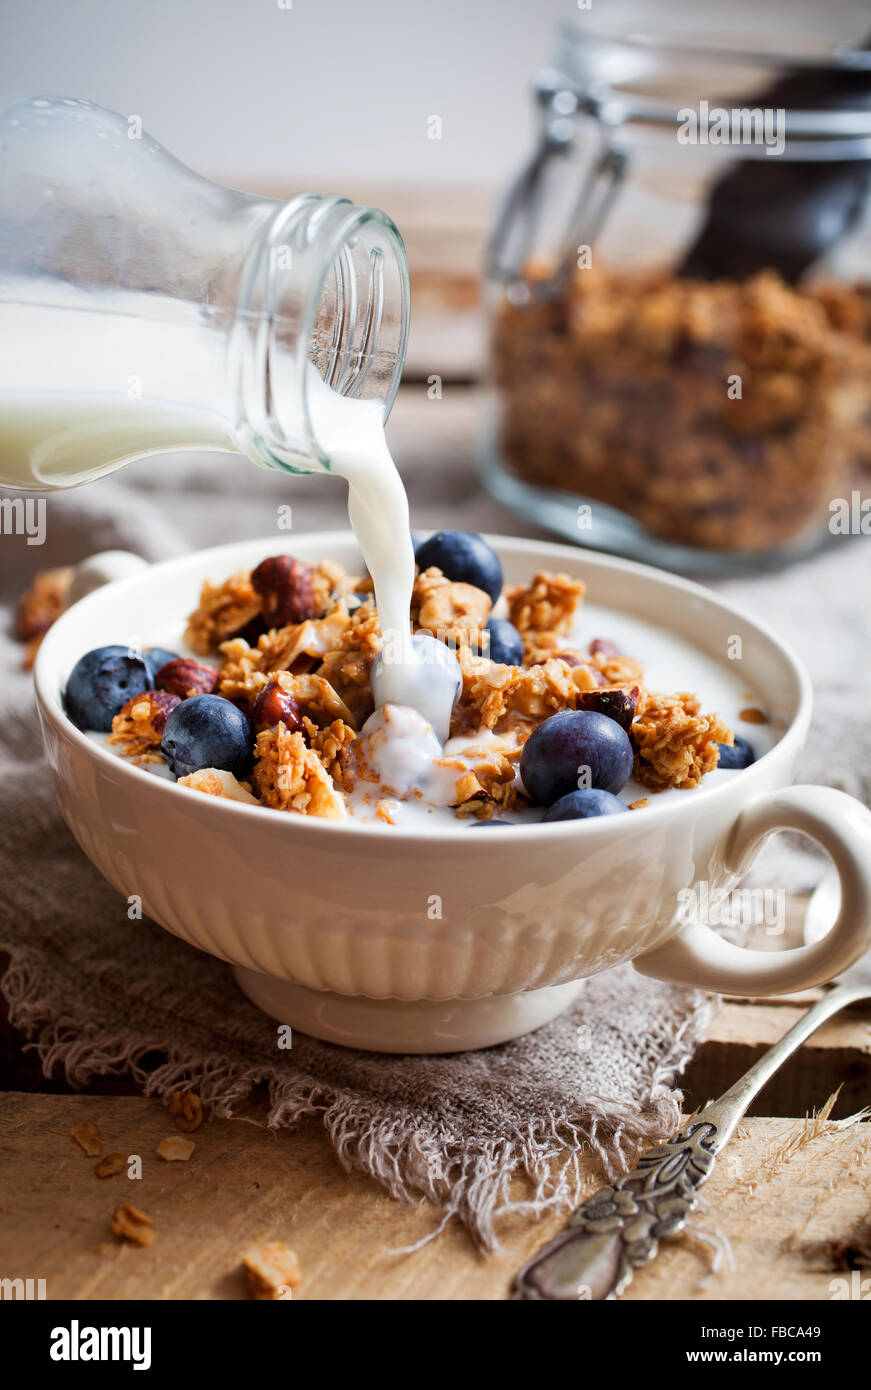 Homemade granola with milk and fresh blueberries - Stock Image